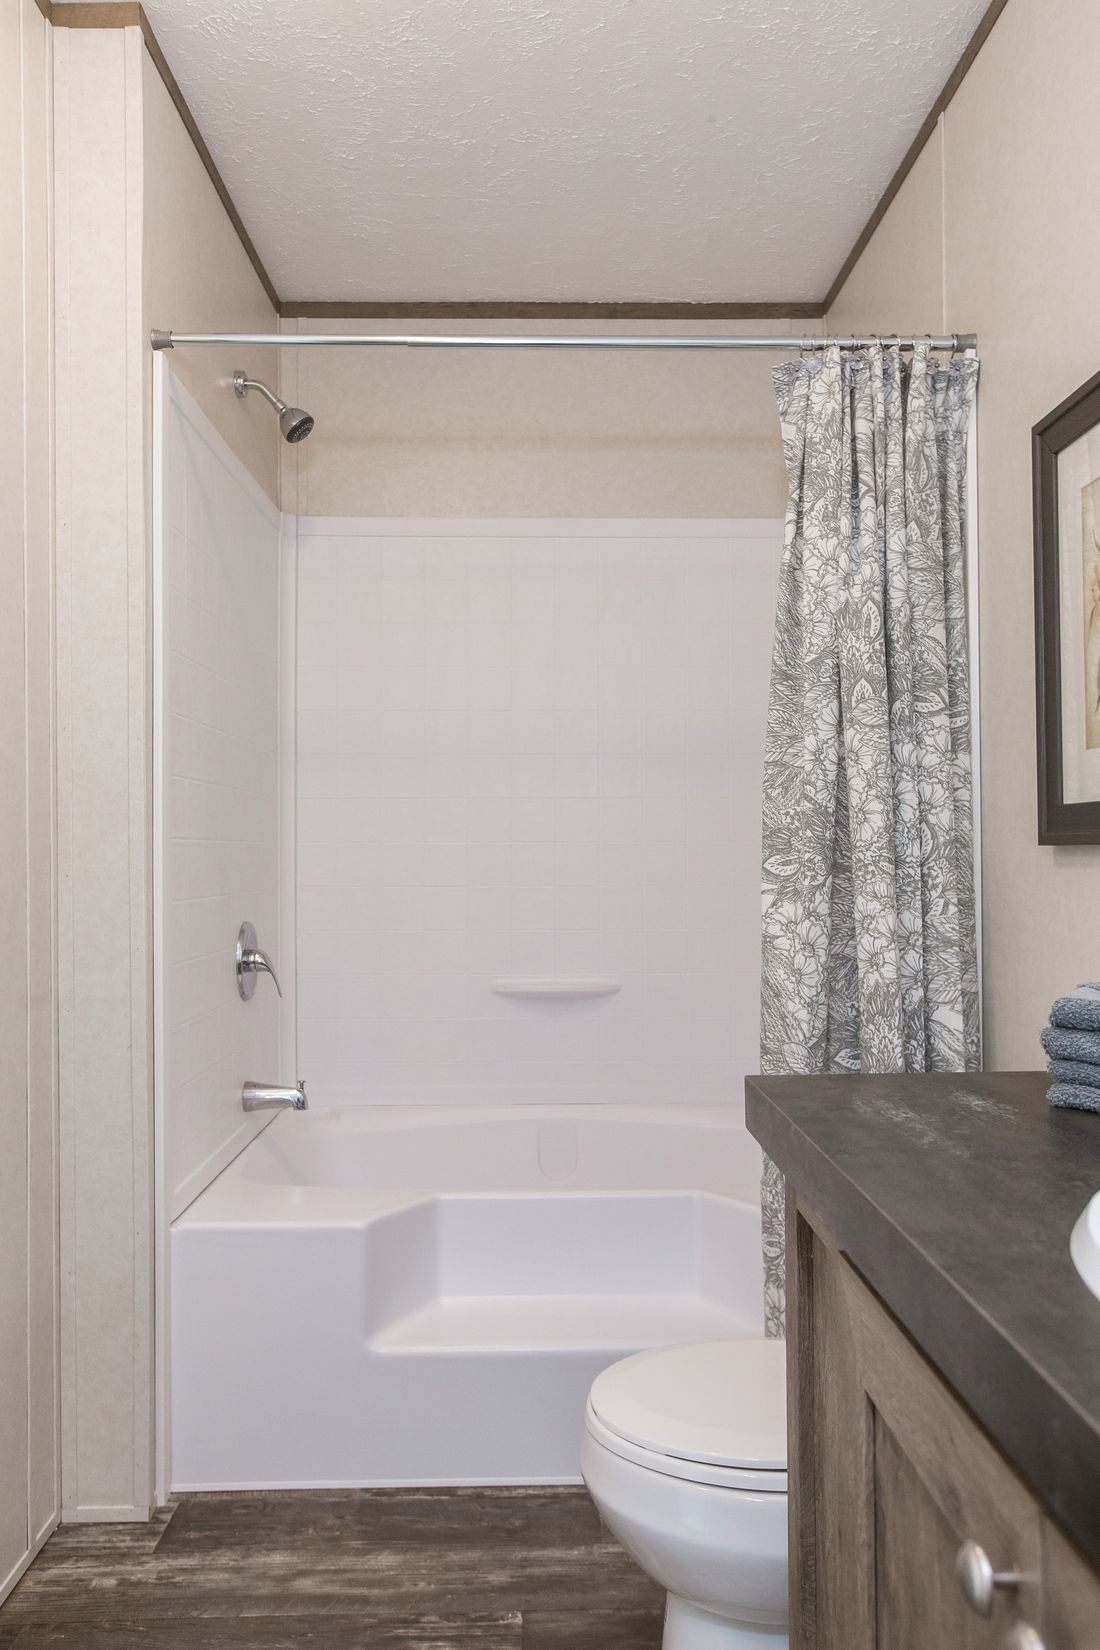 The THE NEW BREEZE I Guest Bathroom. This Manufactured Mobile Home features 3 bedrooms and 2 baths.